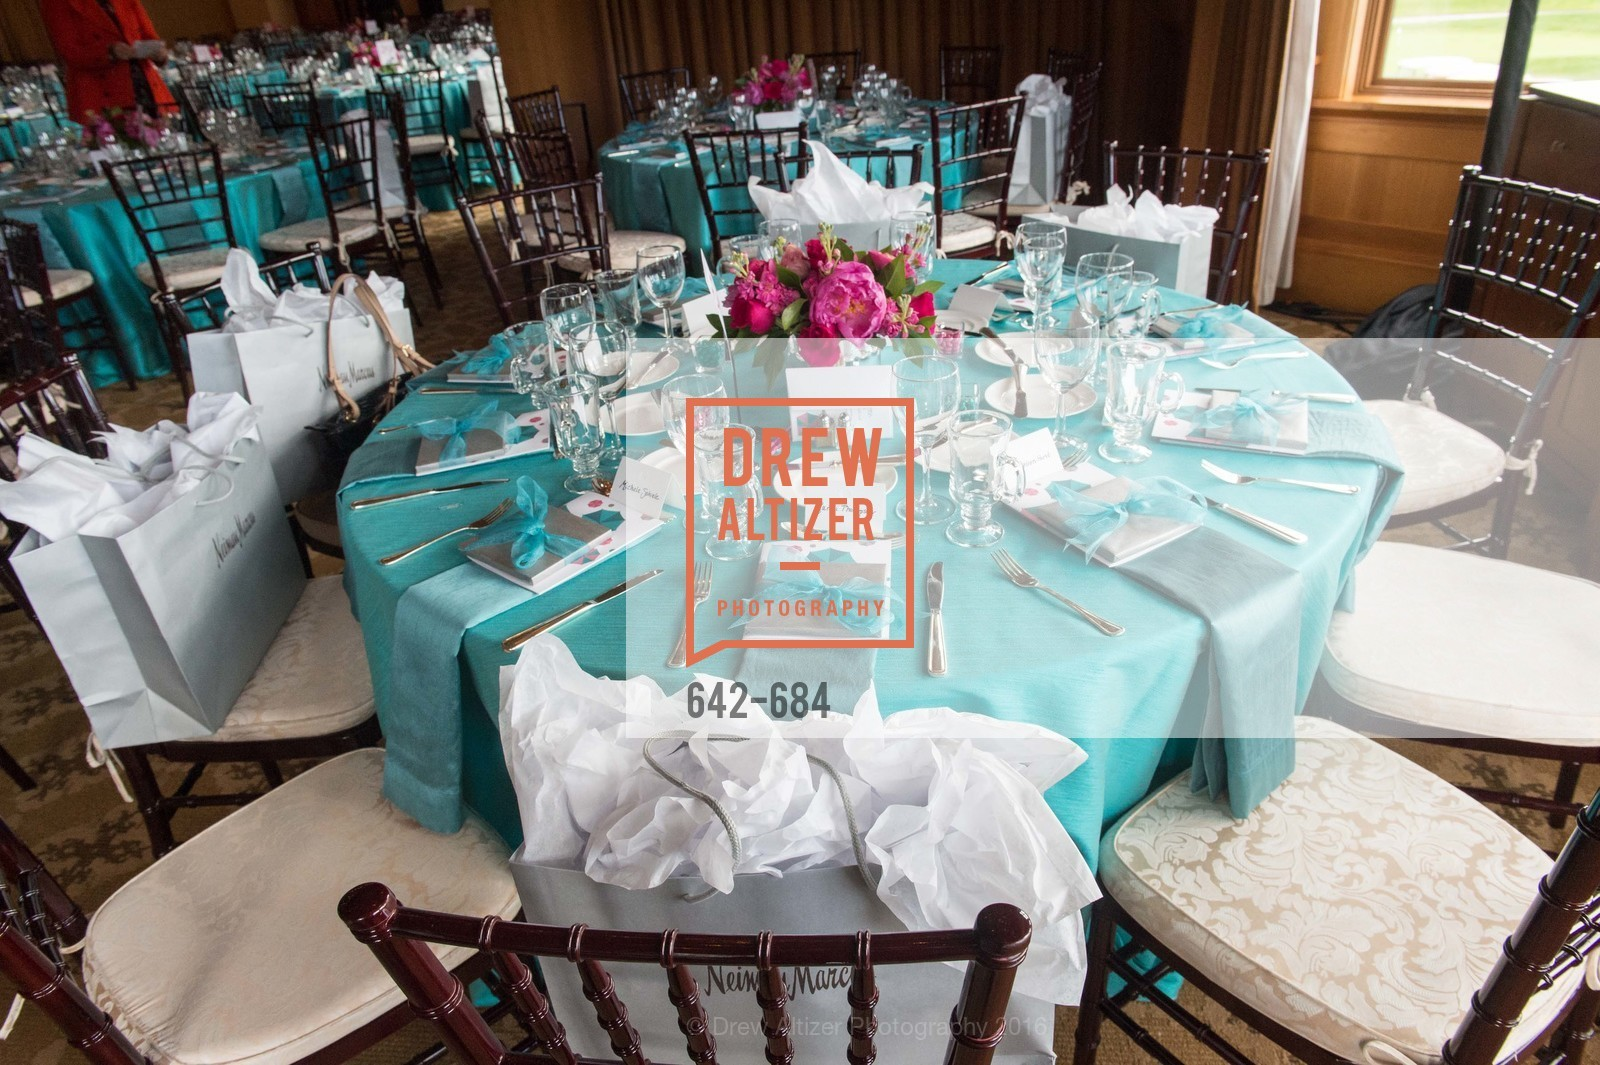 Atmosphere, Under One Umbrella, Sharon Heights Golf and Country Club, January 13th, 2016,Drew Altizer, Drew Altizer Photography, full-service agency, private events, San Francisco photographer, photographer california